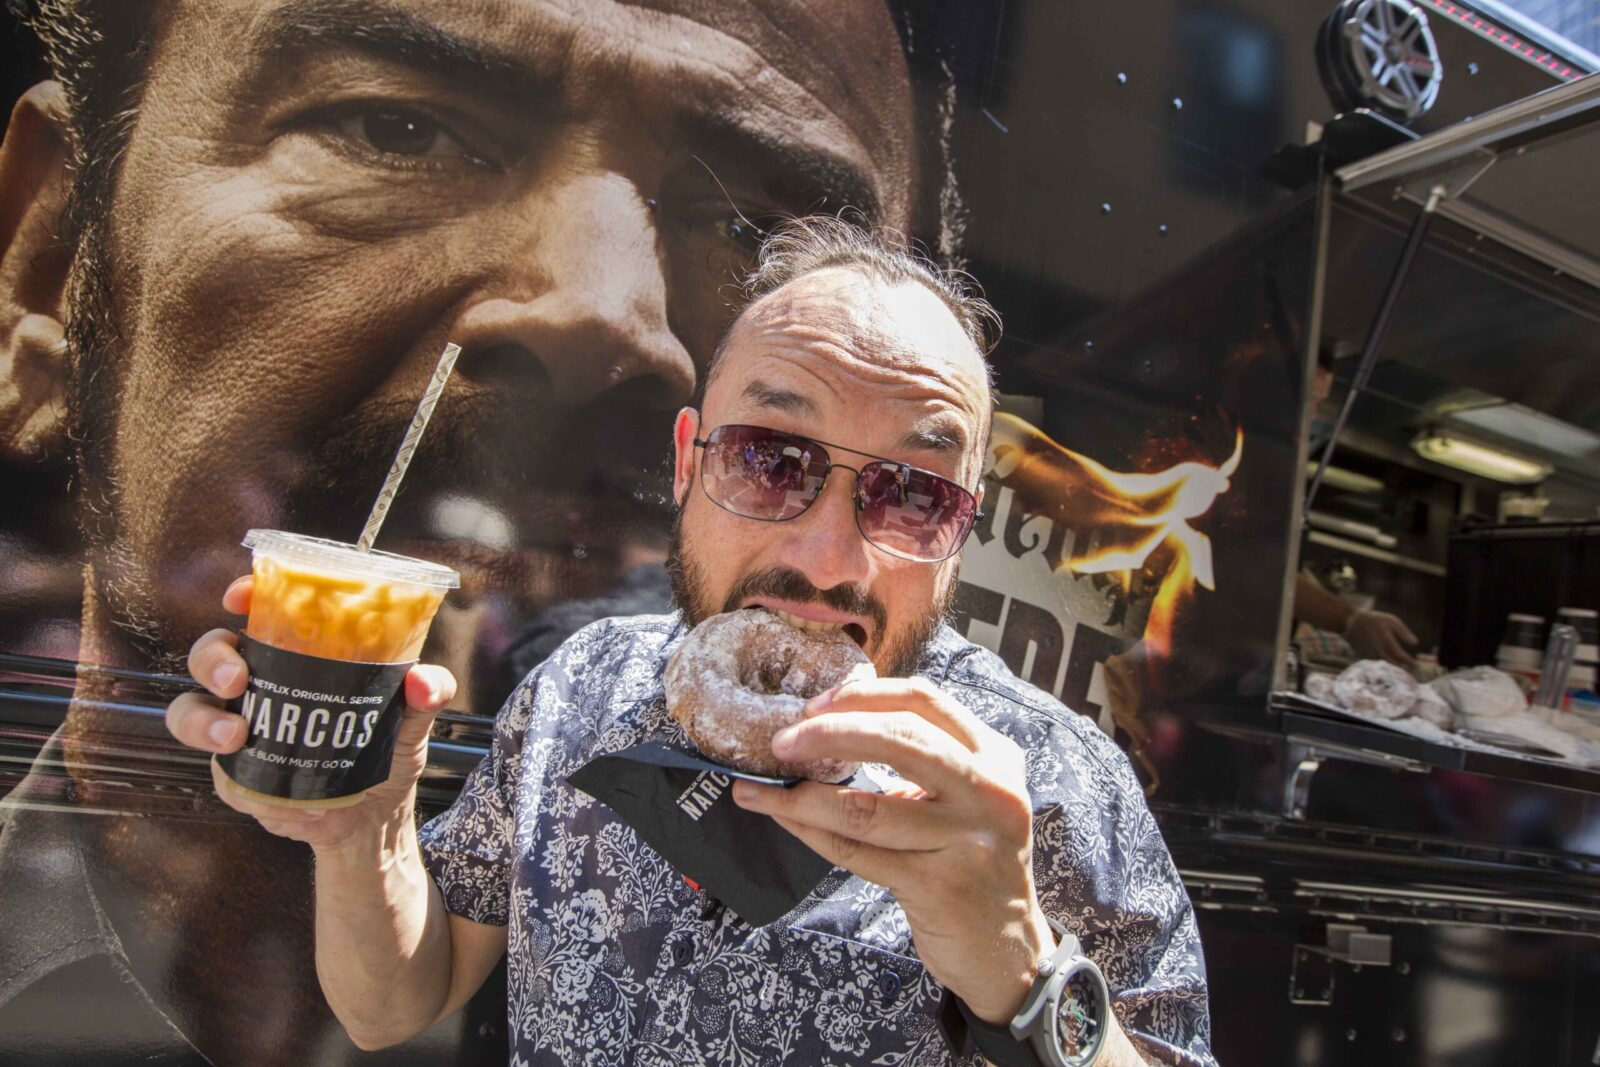 customer eating at mobile tours for narcos